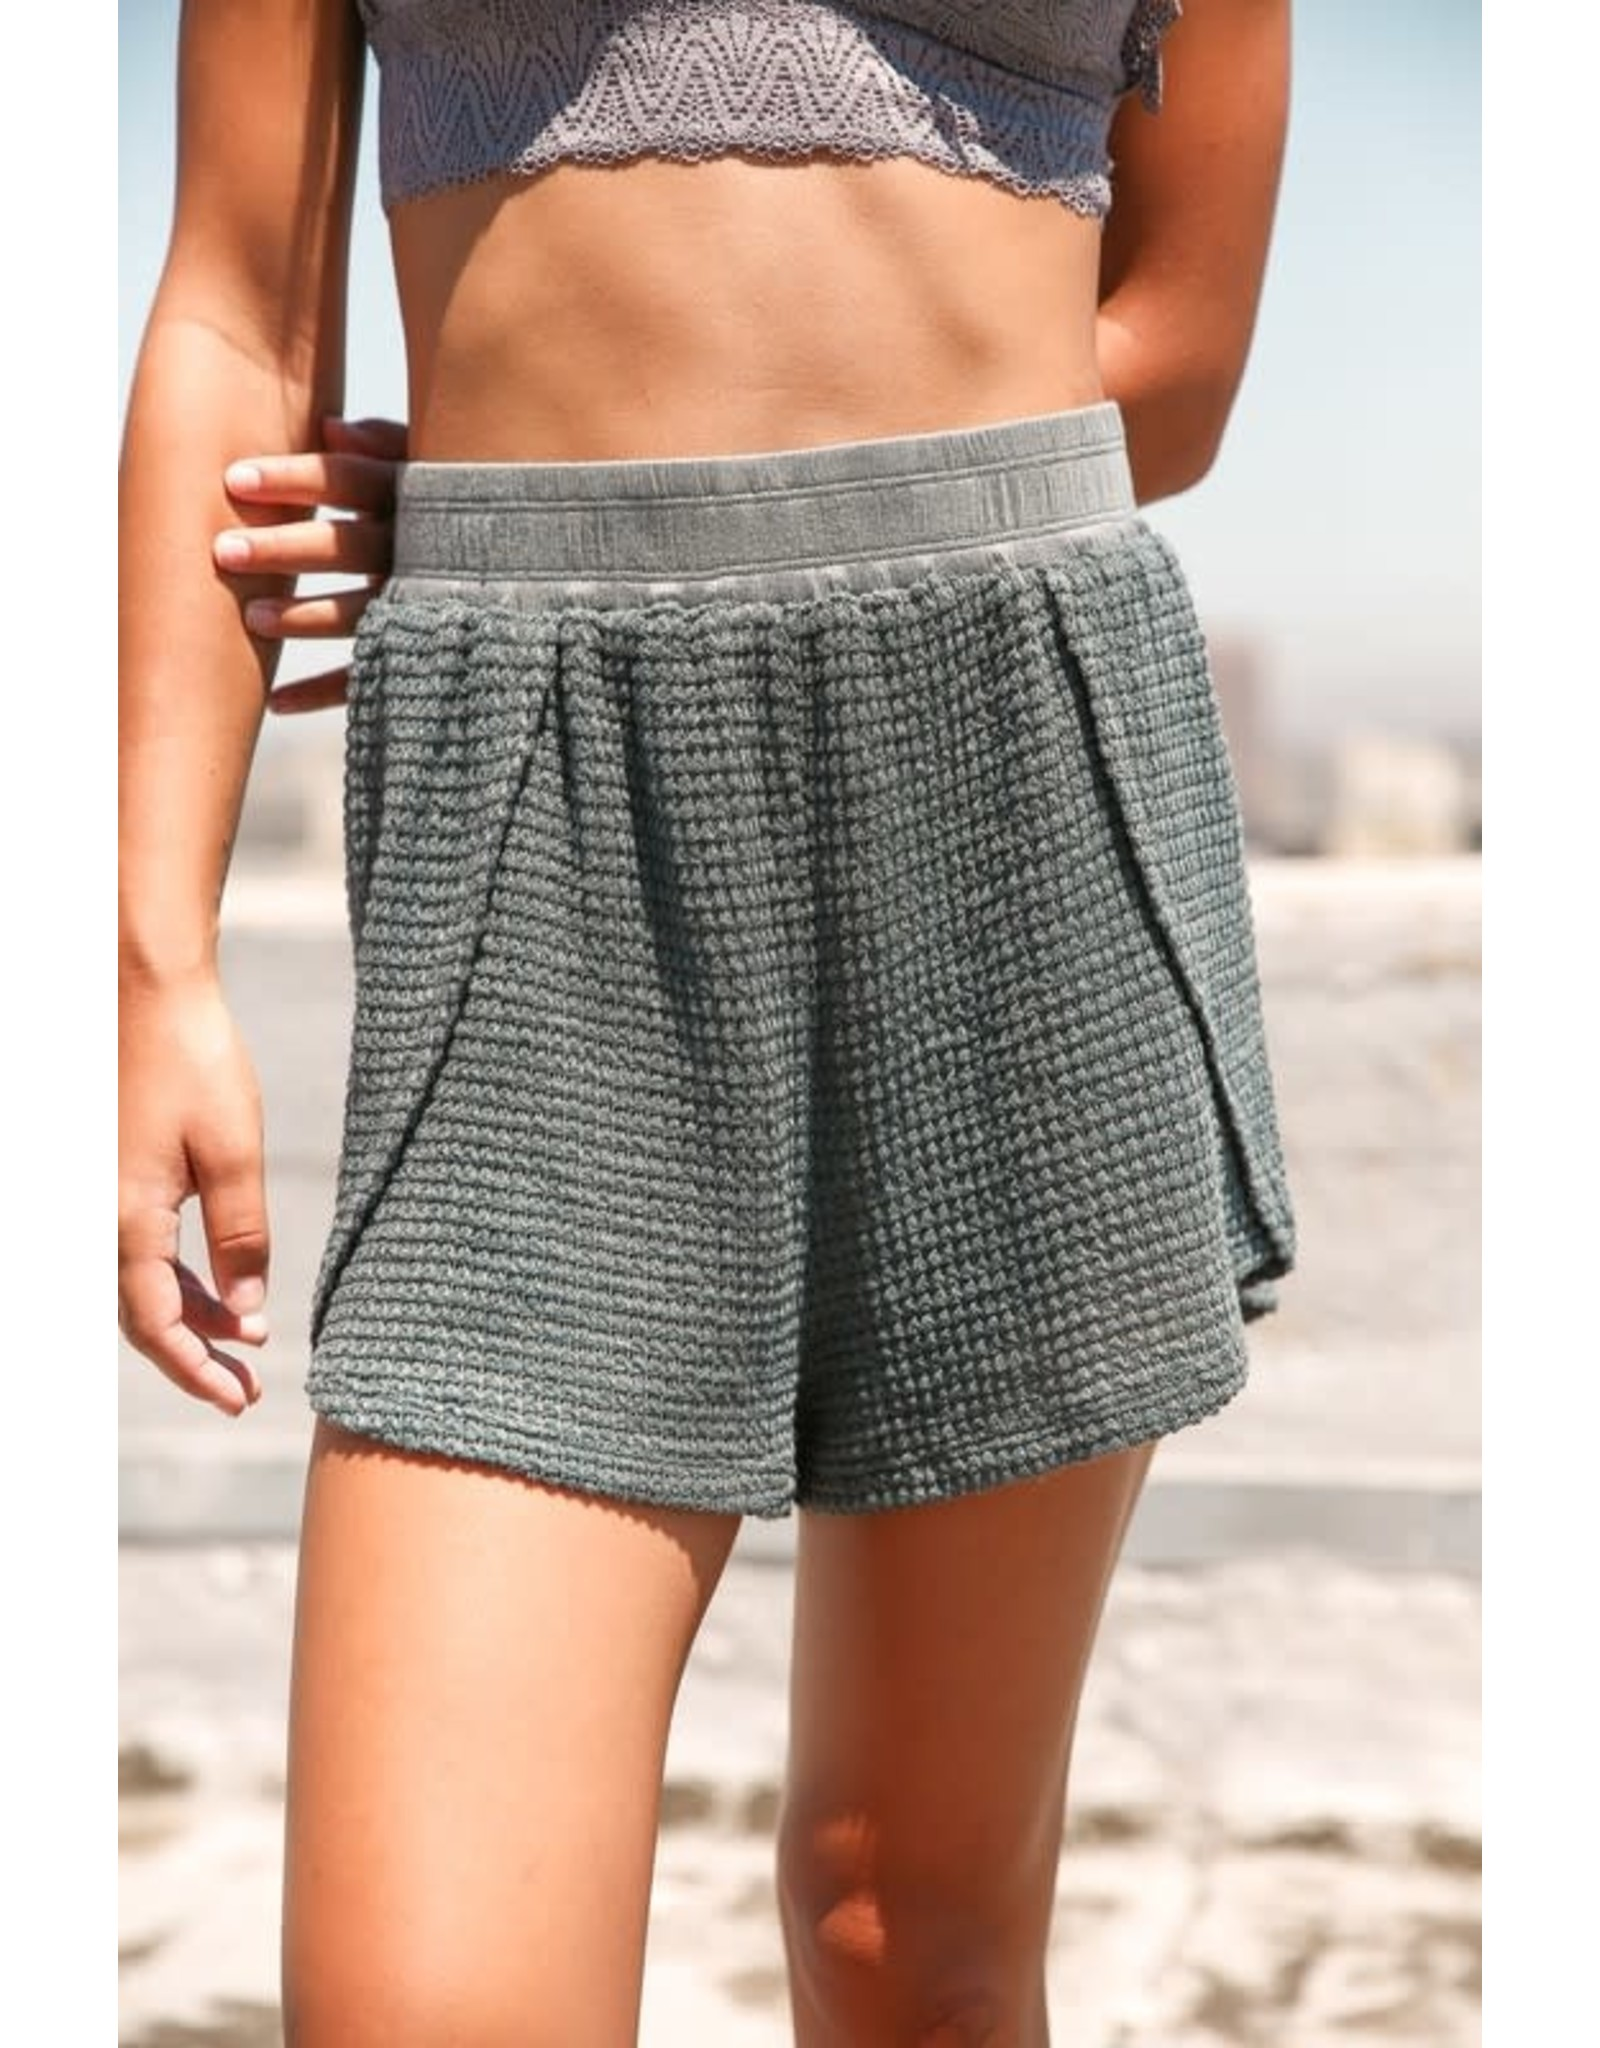 Another Sunday Comfy Shorts